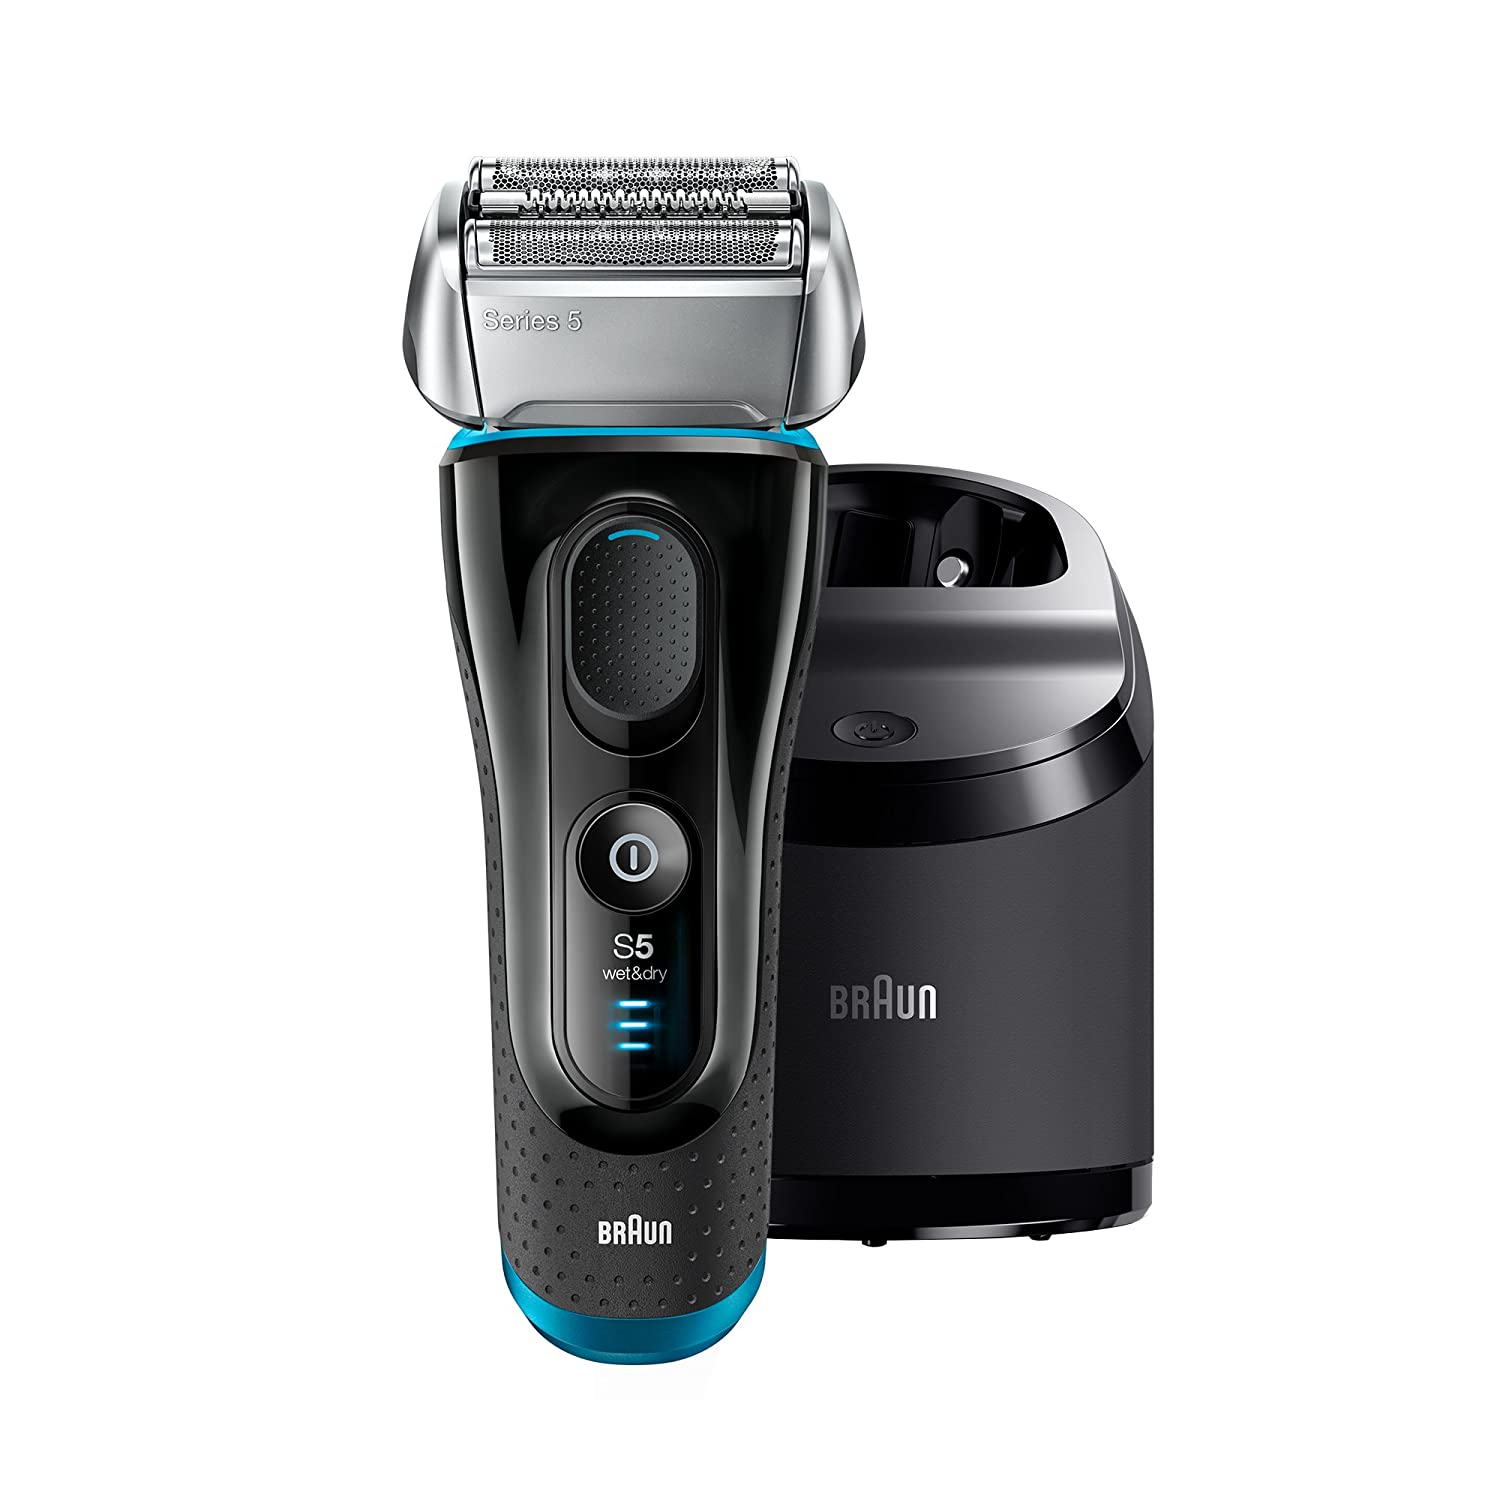 Braun Series 5 5190cc Men's Electric Rechargeable Cordless Razor and Foil Shaver with Clean & Charge System